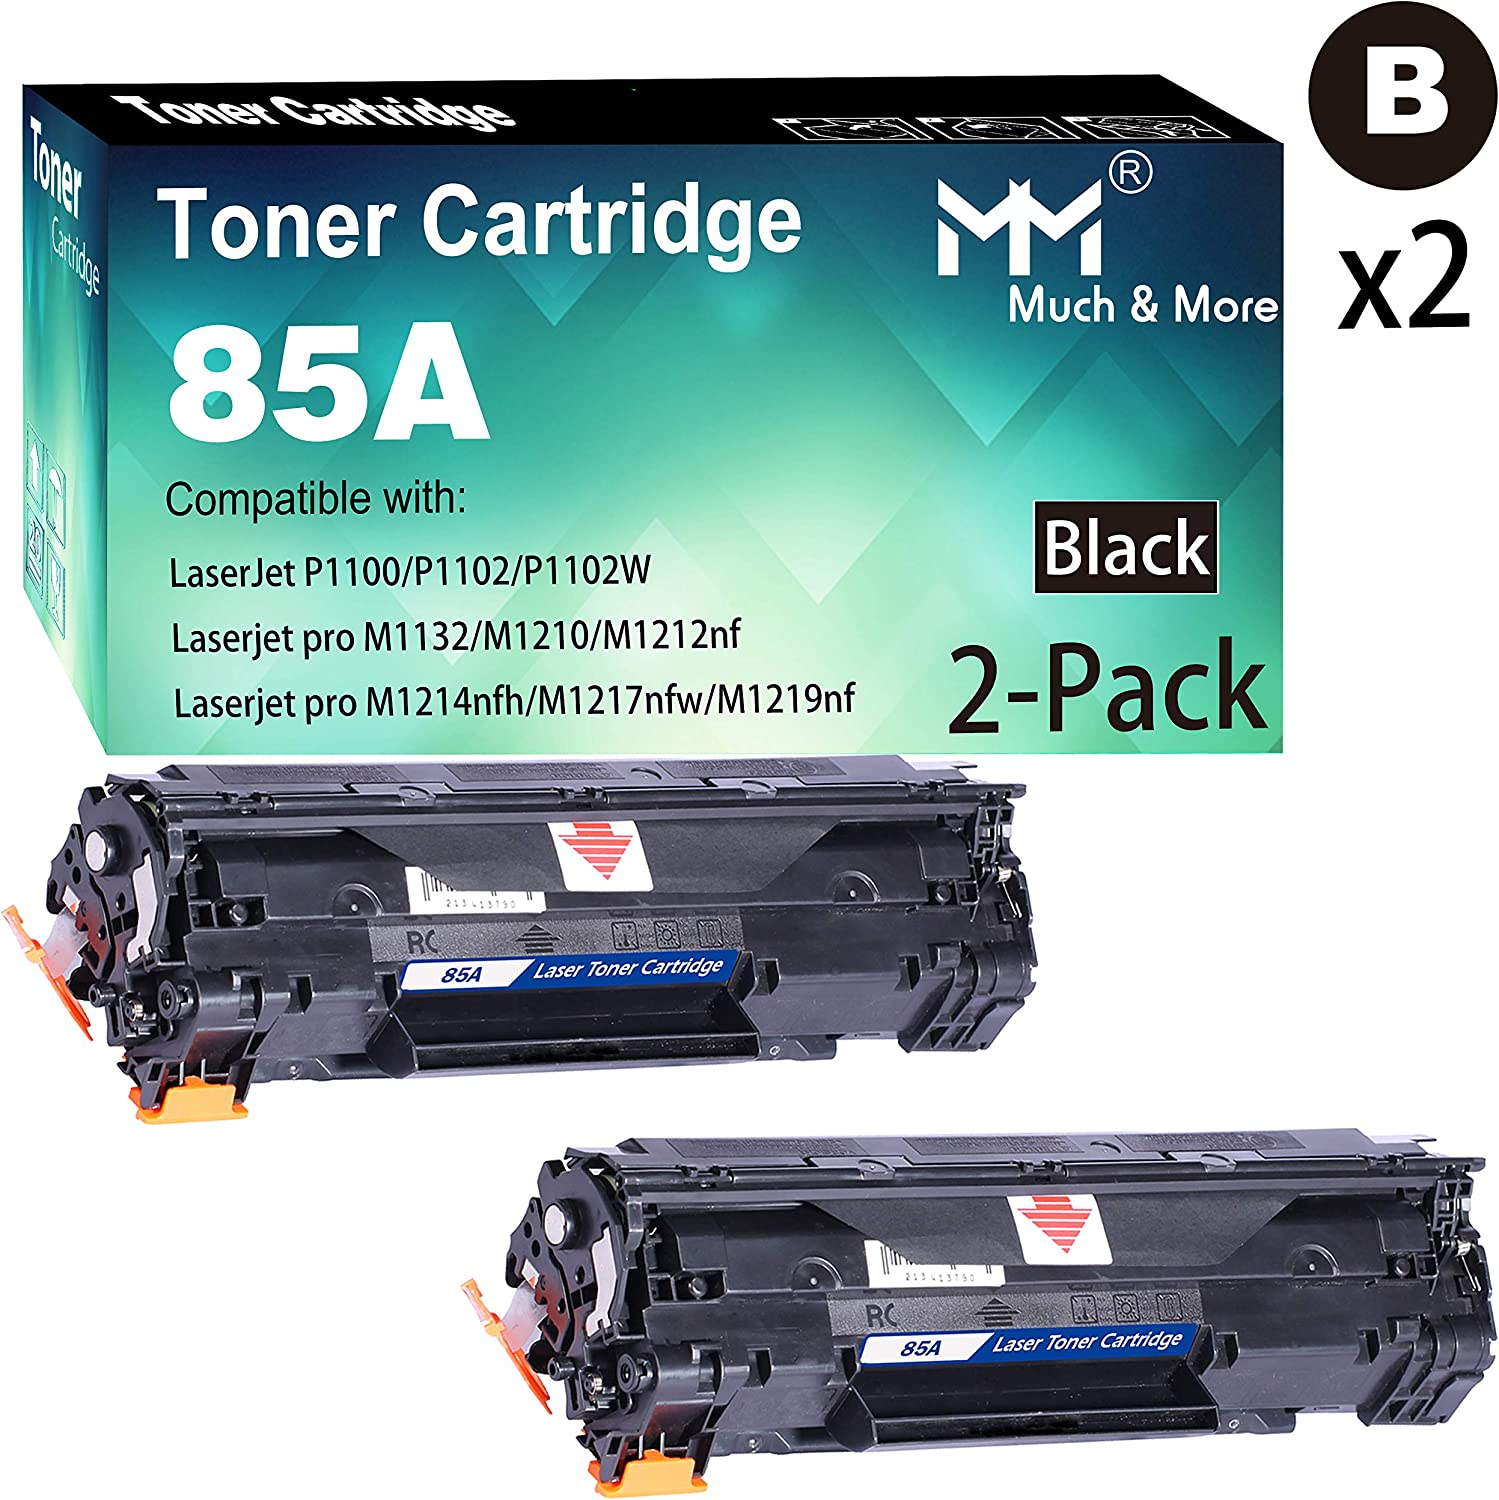 (2-Pack, Black) Compatible HP 85A CE285A Toner Cartridge 285A to Used with HP Laserjet Pro P1102w P1109w M1212nf M1217nfw MFP Printer, by MuchMore